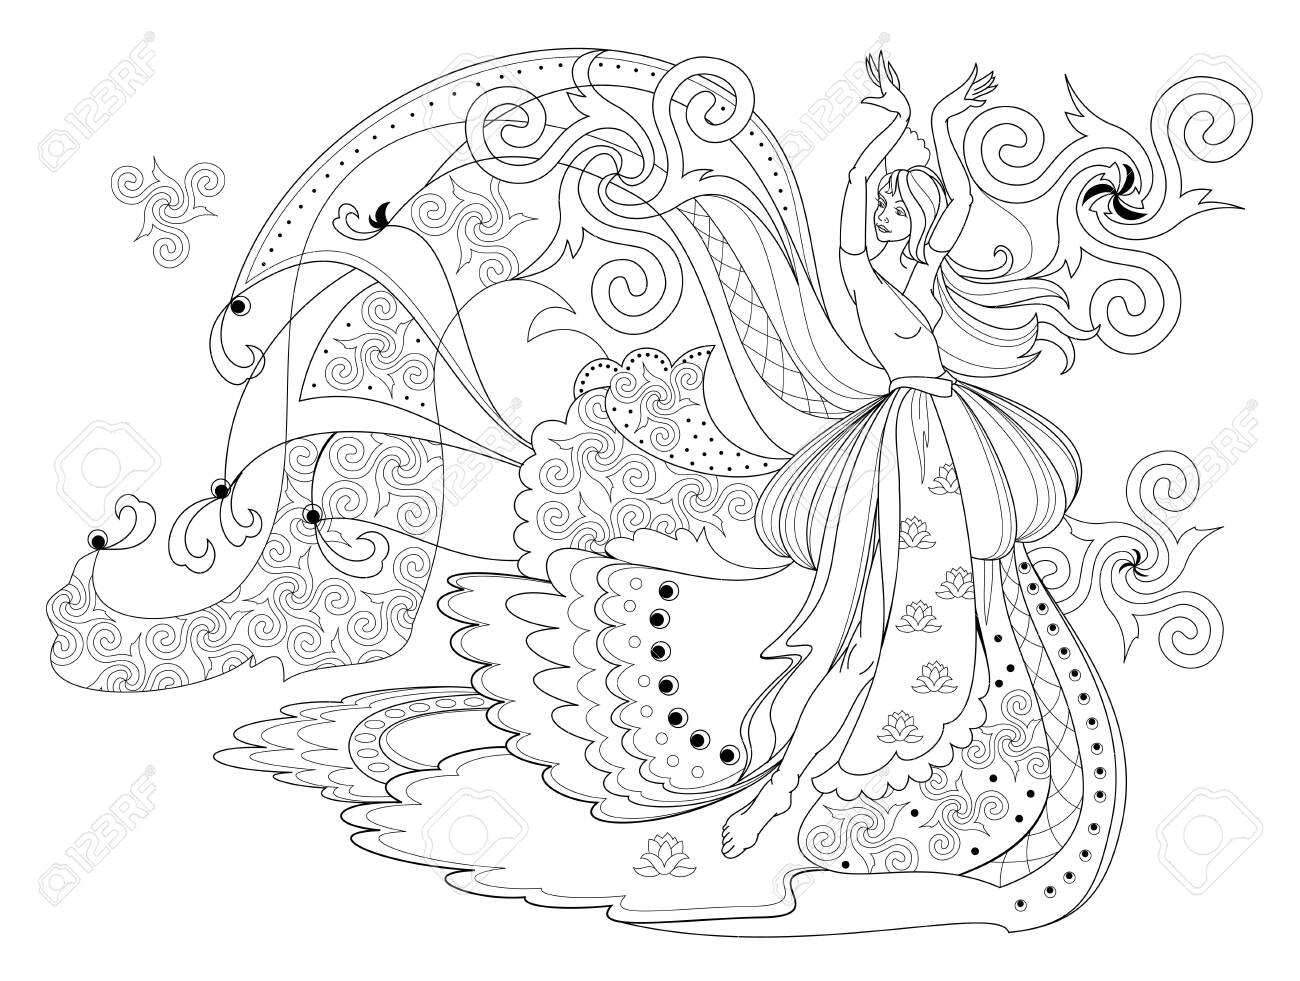 Black and white page for coloring book. Fantasy drawing of dancing..